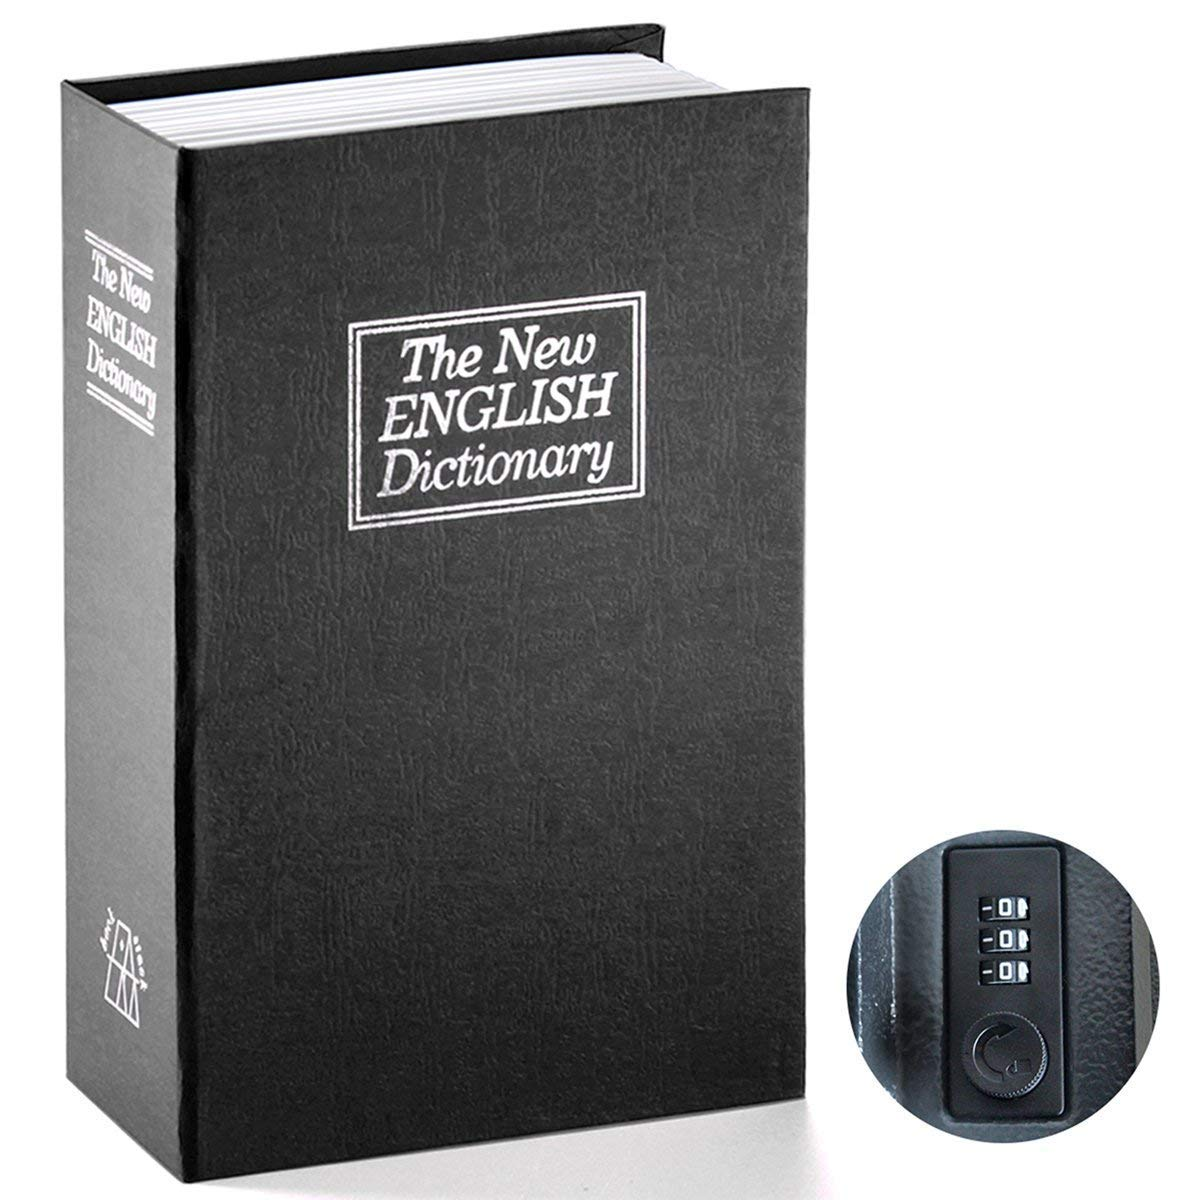 PrimeSons Home Dictionary Diversion Book Safe with Key Lock, Metal, Black